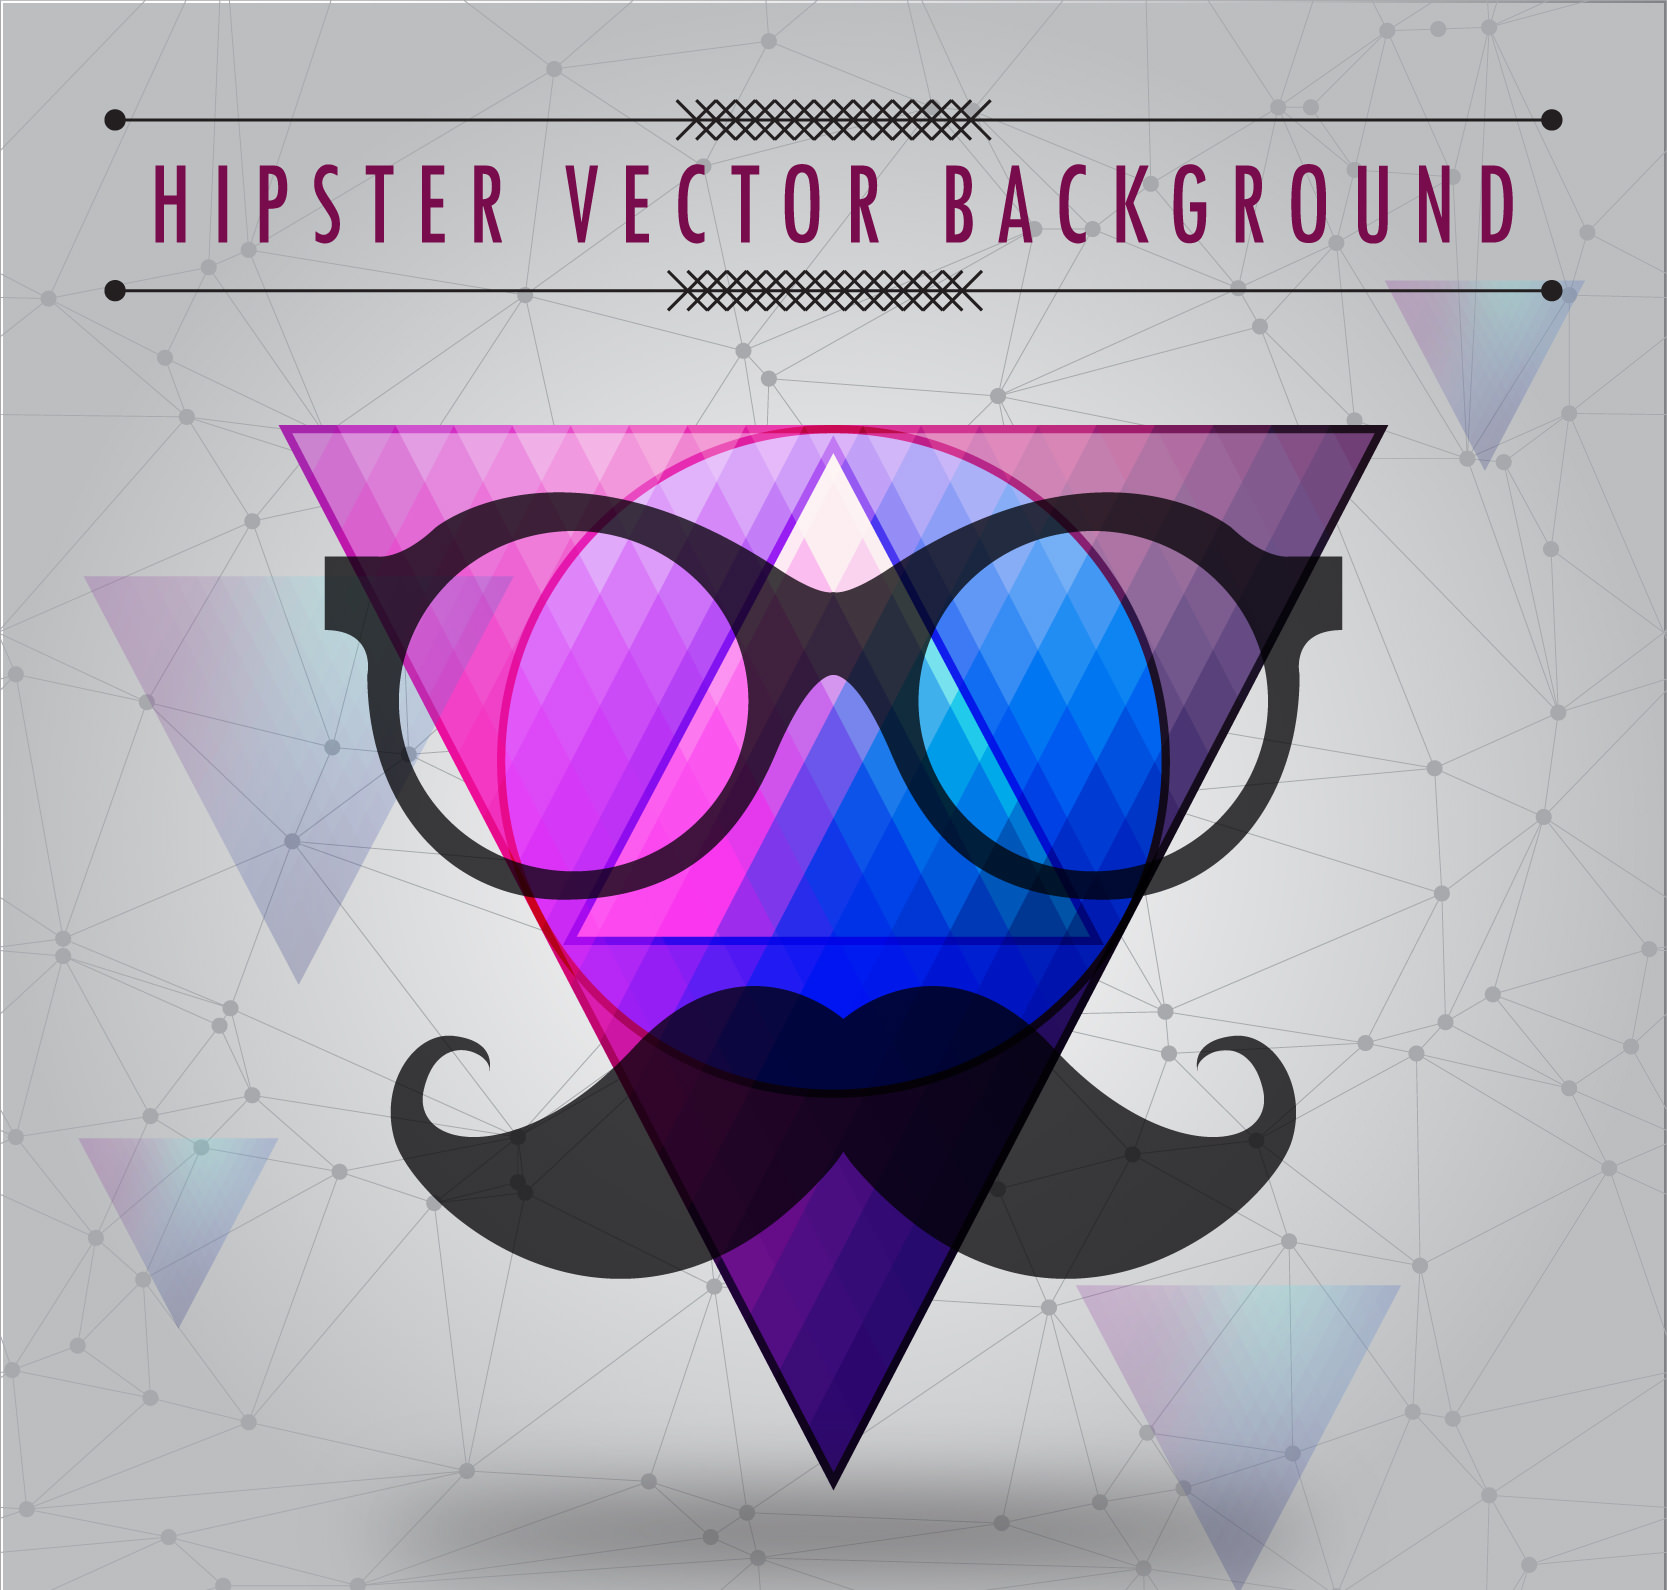 free vector illustration hipster background